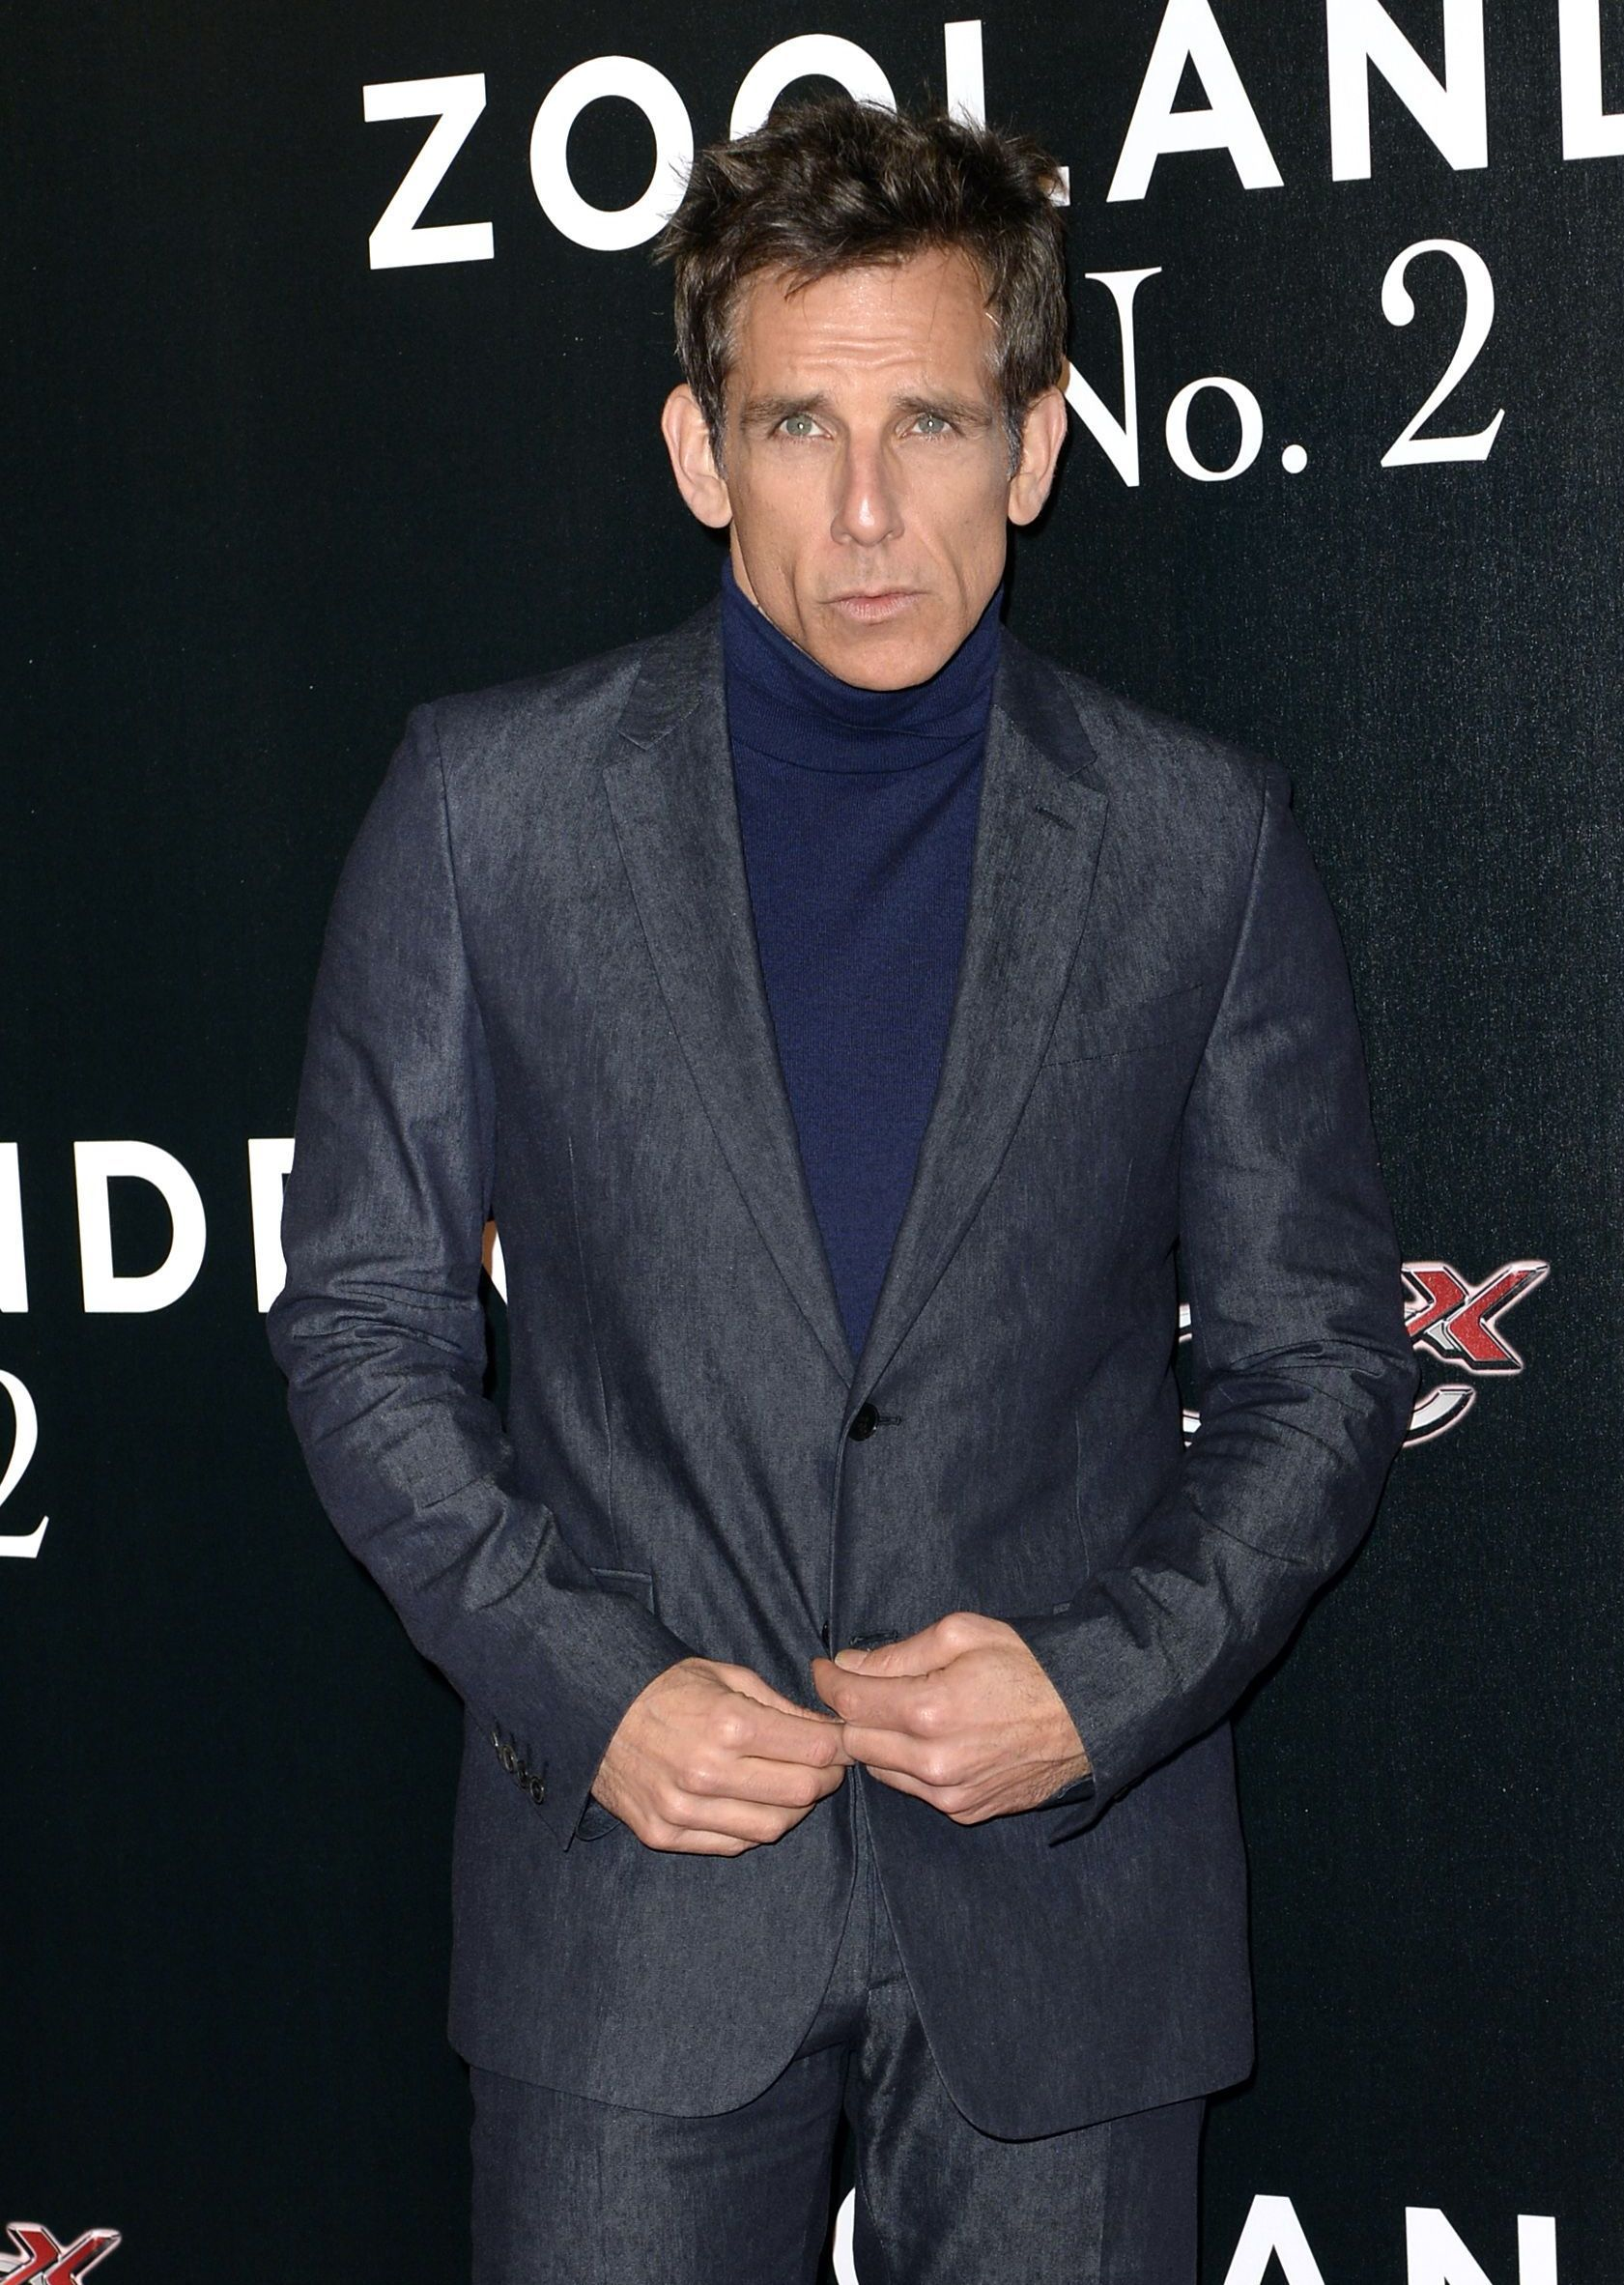 Introducing the Derek Zoolander Center For People Who Don't Age Good